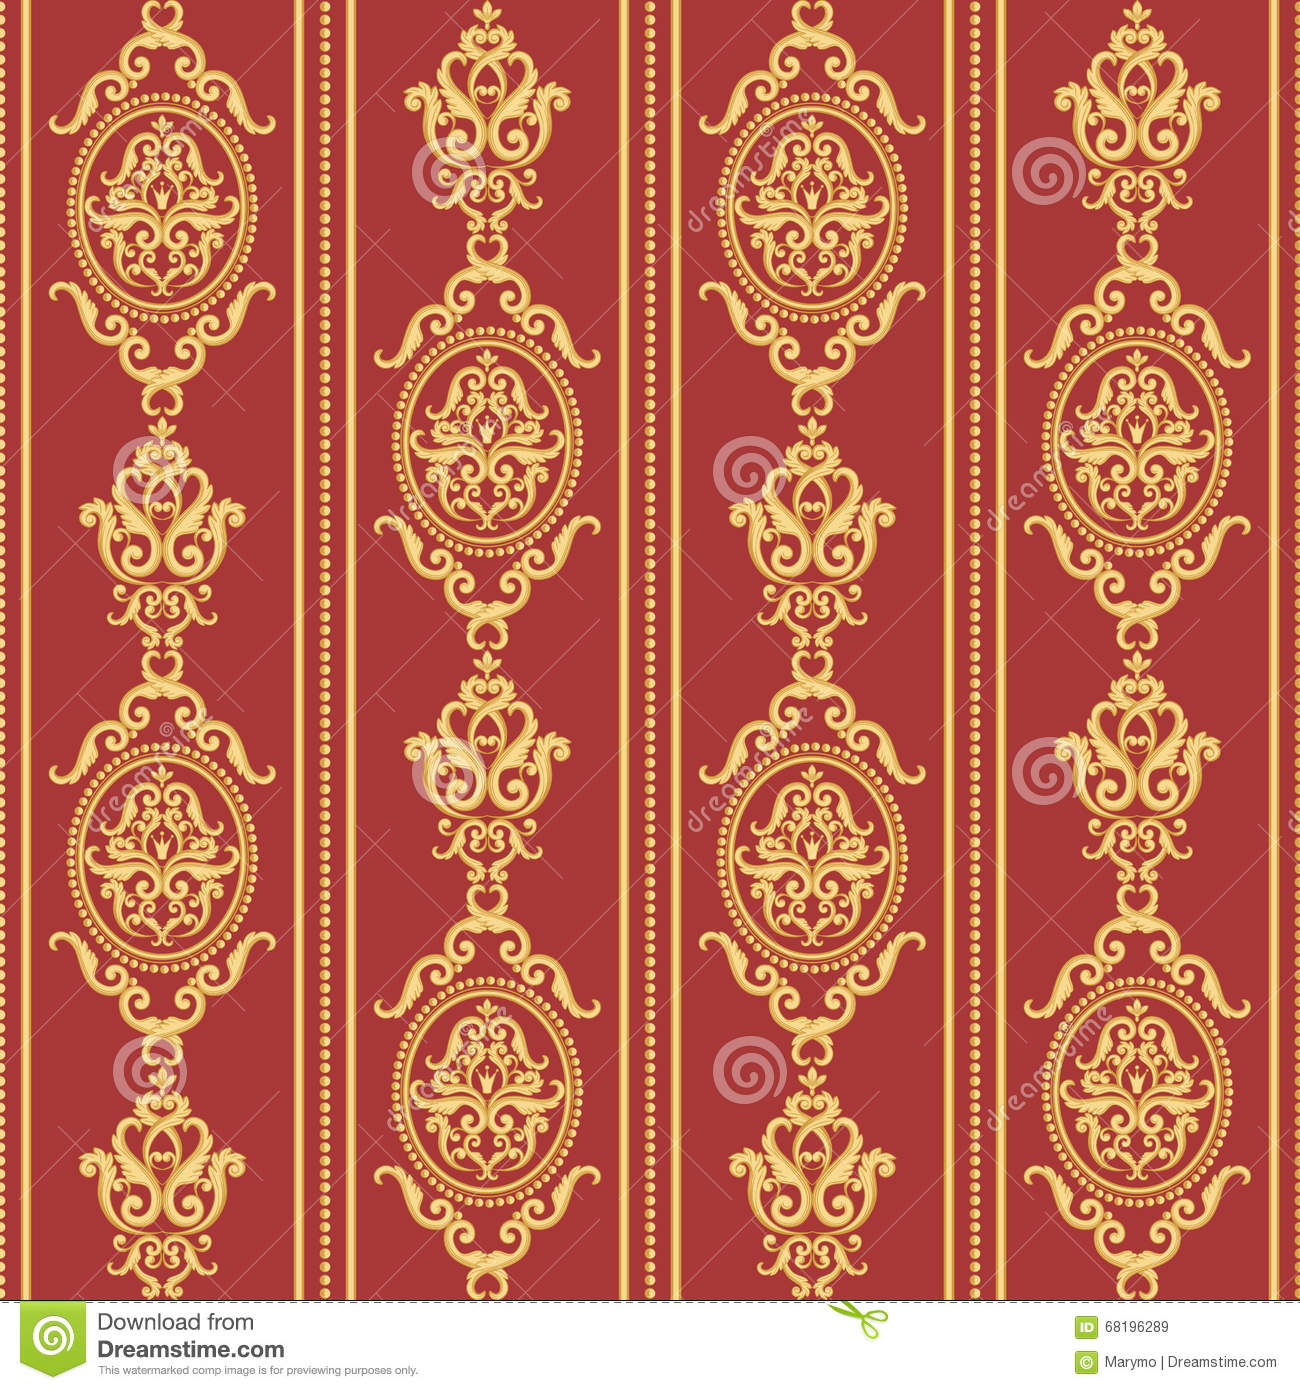 Gold And Red Texture In Vintage Rich Royal Style